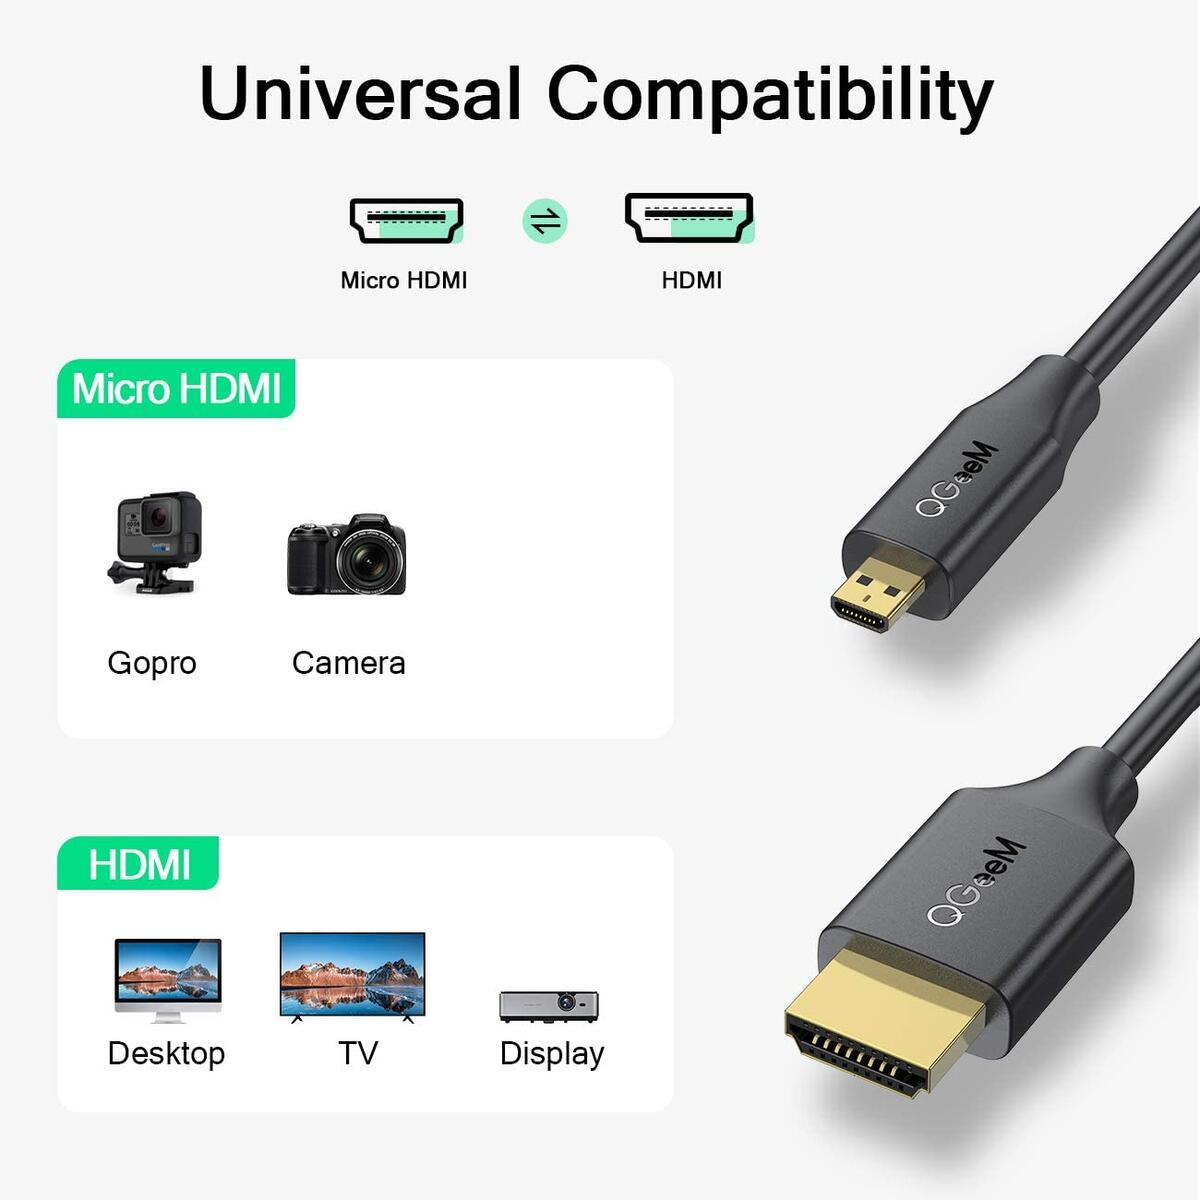 Micro HDMI to HDMI Cable 6FT, High Speed 4K 60Hz Male to Male HDR HDMI 2.0 Adapter, Compatible with GoPro Hero 7/6 / 5, GoPro Hero 2018, Sony A6600 / A6400 Nikon Z50, Canon EOS M50 Leica CL